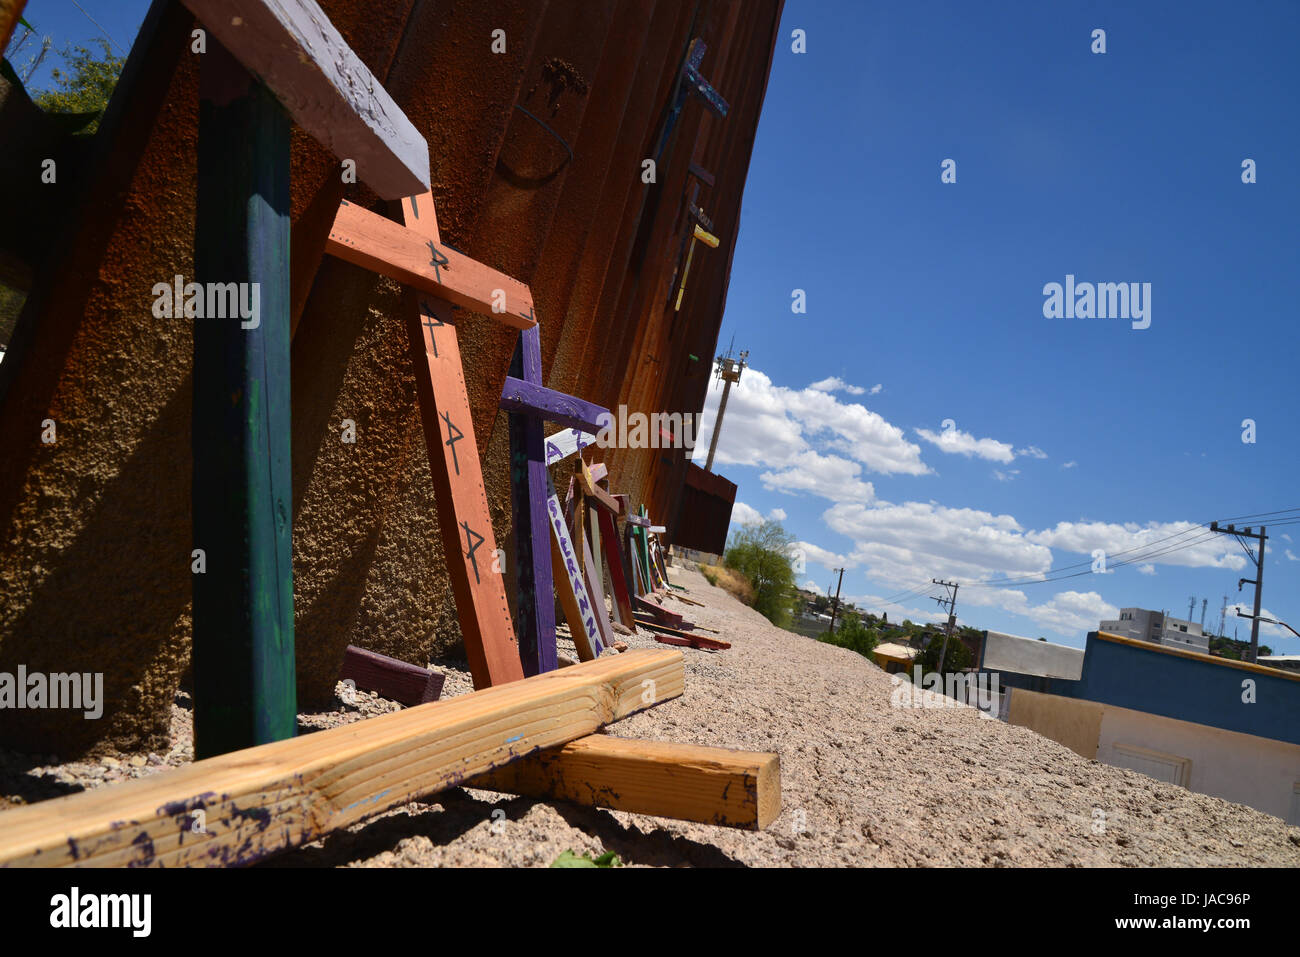 A wall indicates the international border with Nogales, Arizona, USA, as seen from Nogales, Sonora, Mexico. - Stock Image